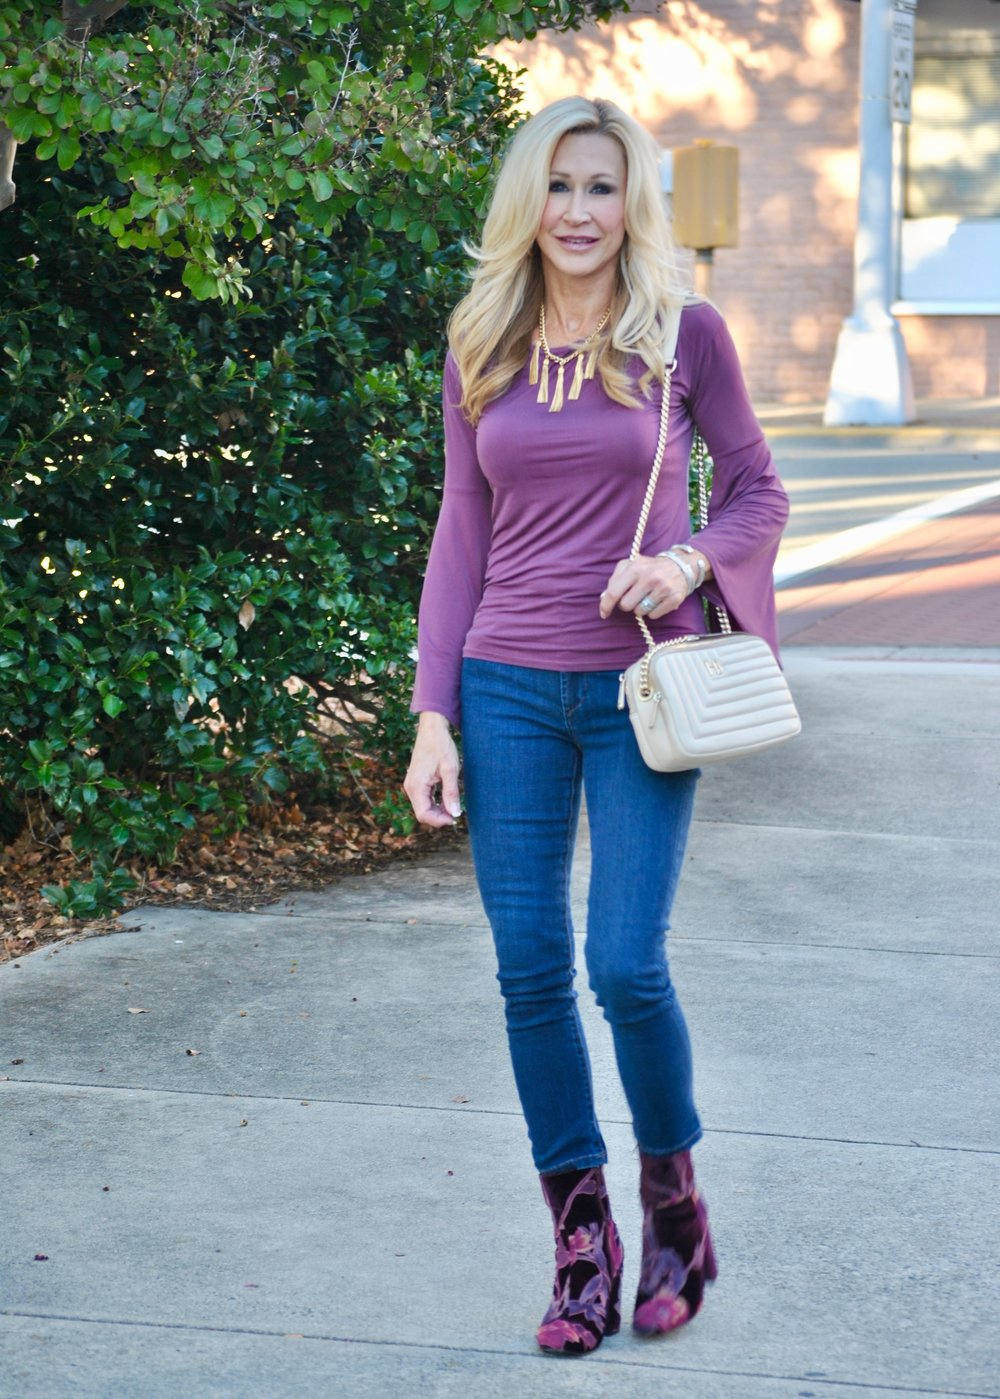 Bell sleeve top with Rachel Zoe necklace and Steve Madden boots